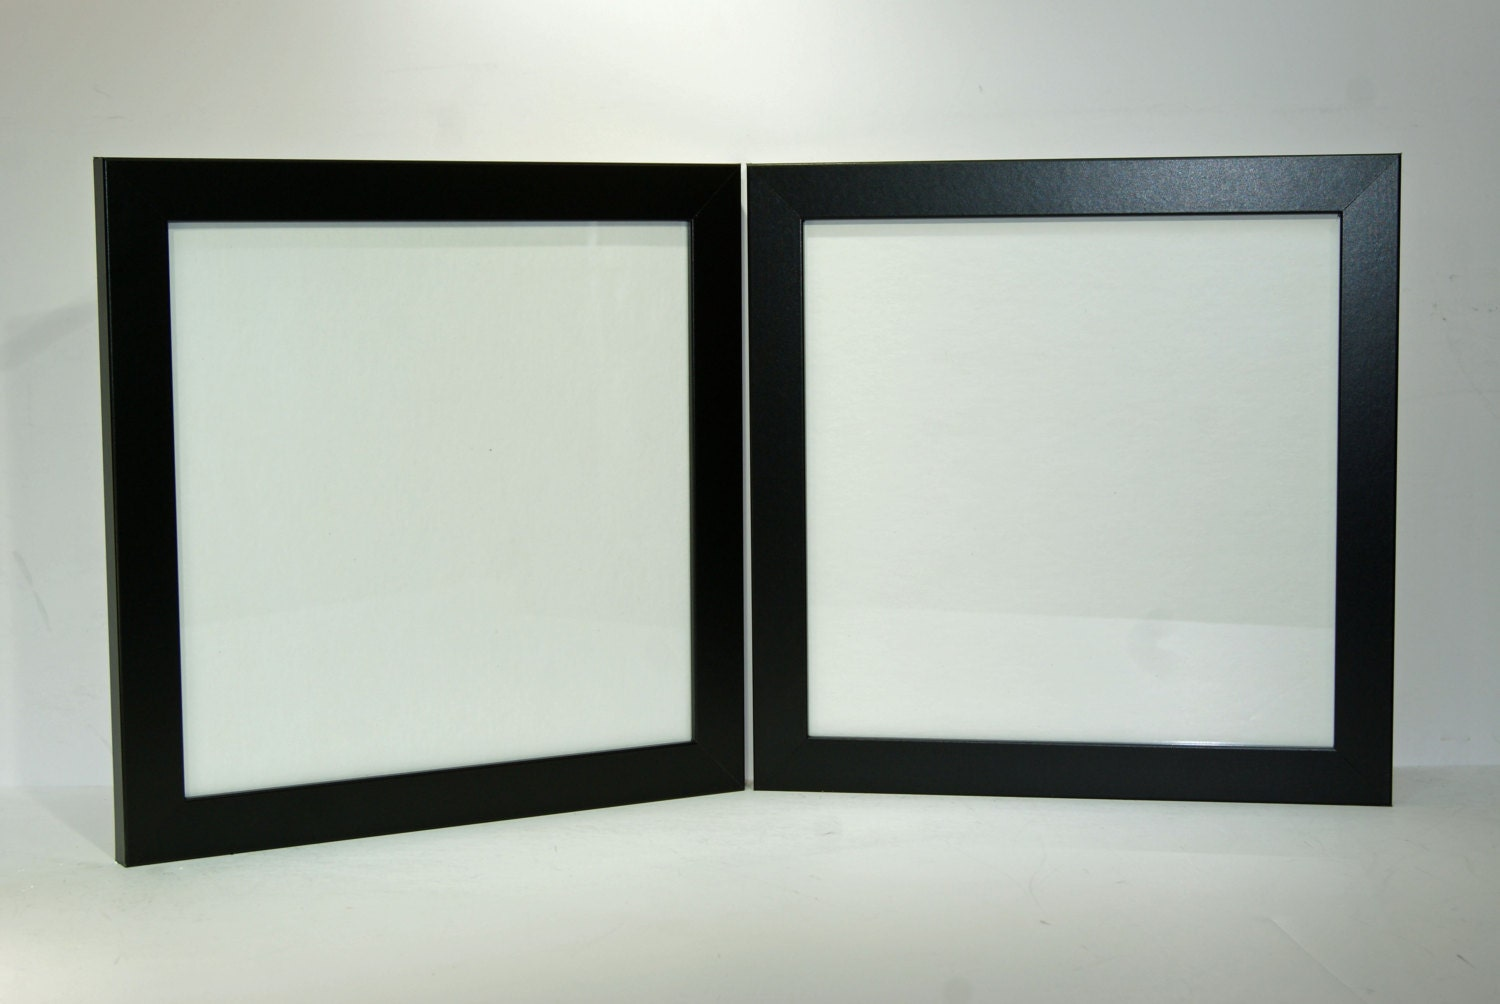 square black picture frames 4x4 5x5 6x6 7x7 8x8 9x9 10x10 11x11 12x12 up to 24x24 for home office photography artist and professionals